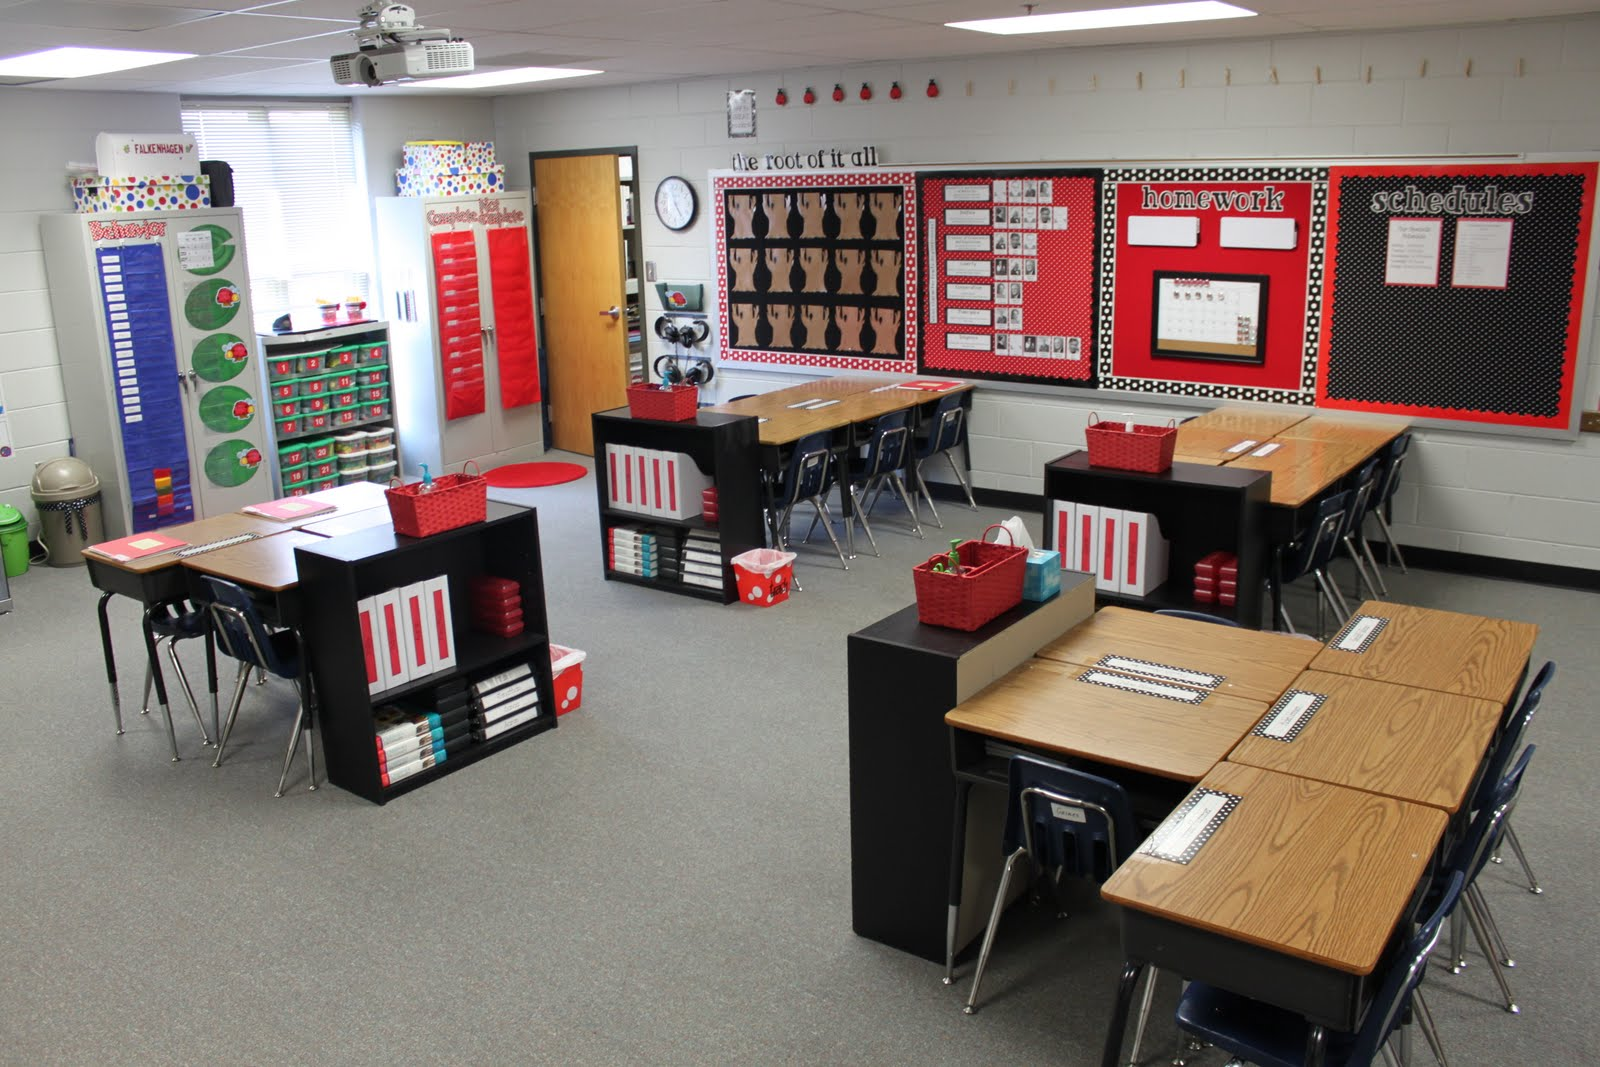 Classroom Design And Organization : Dandelions and dragonflies finally my classroom reveal